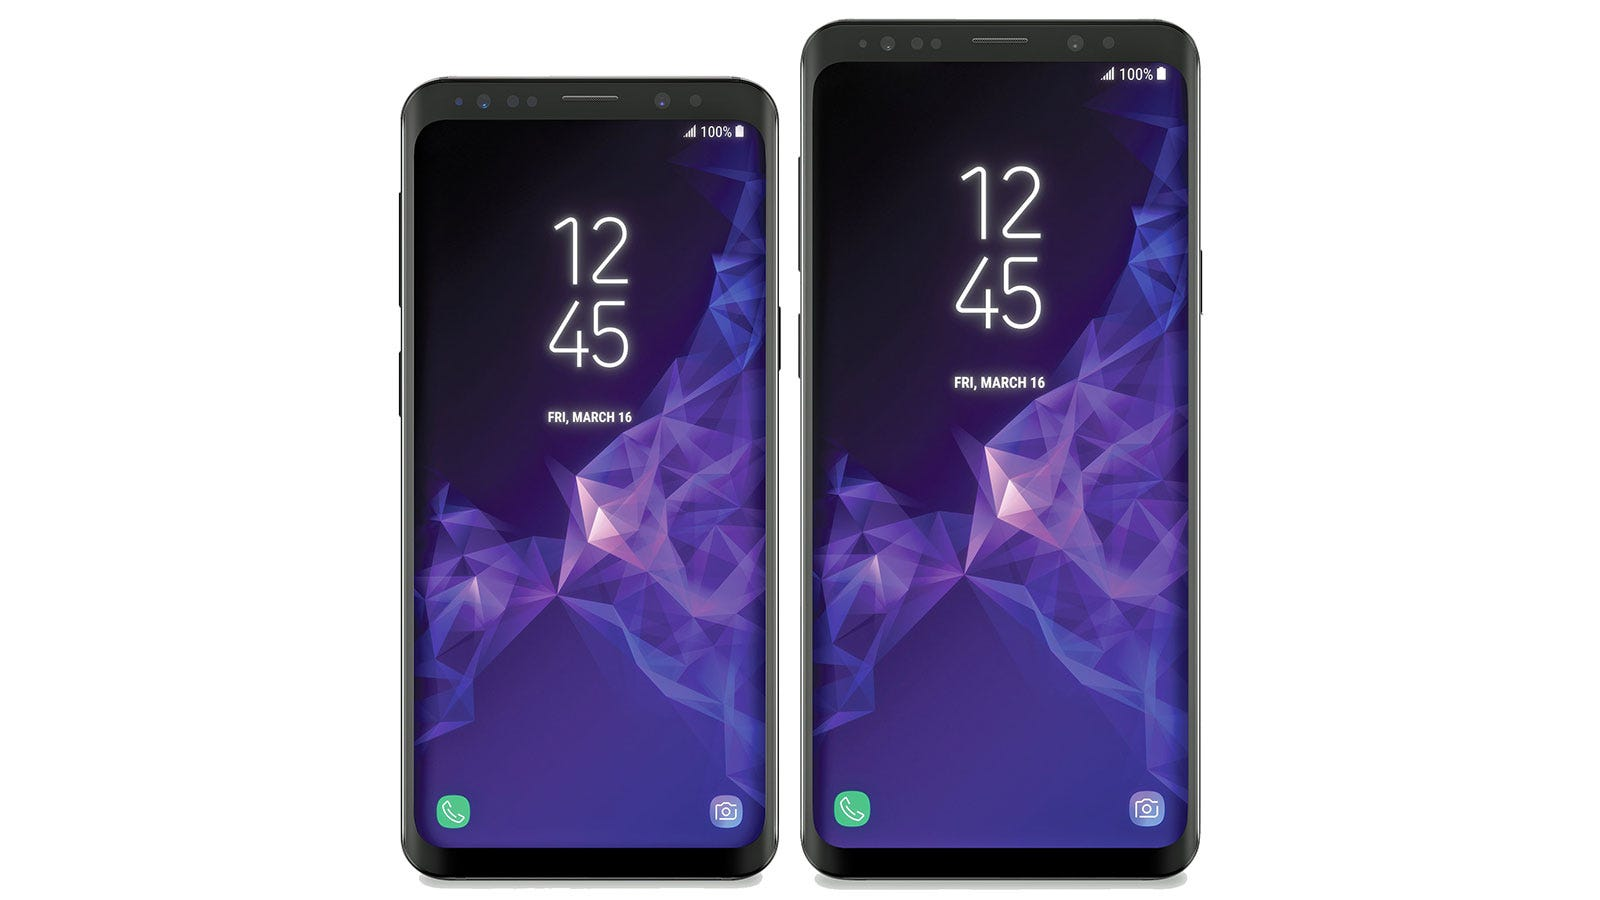 Can You Spot Anything Different About the Galaxy S9 in These Leaked Pics?